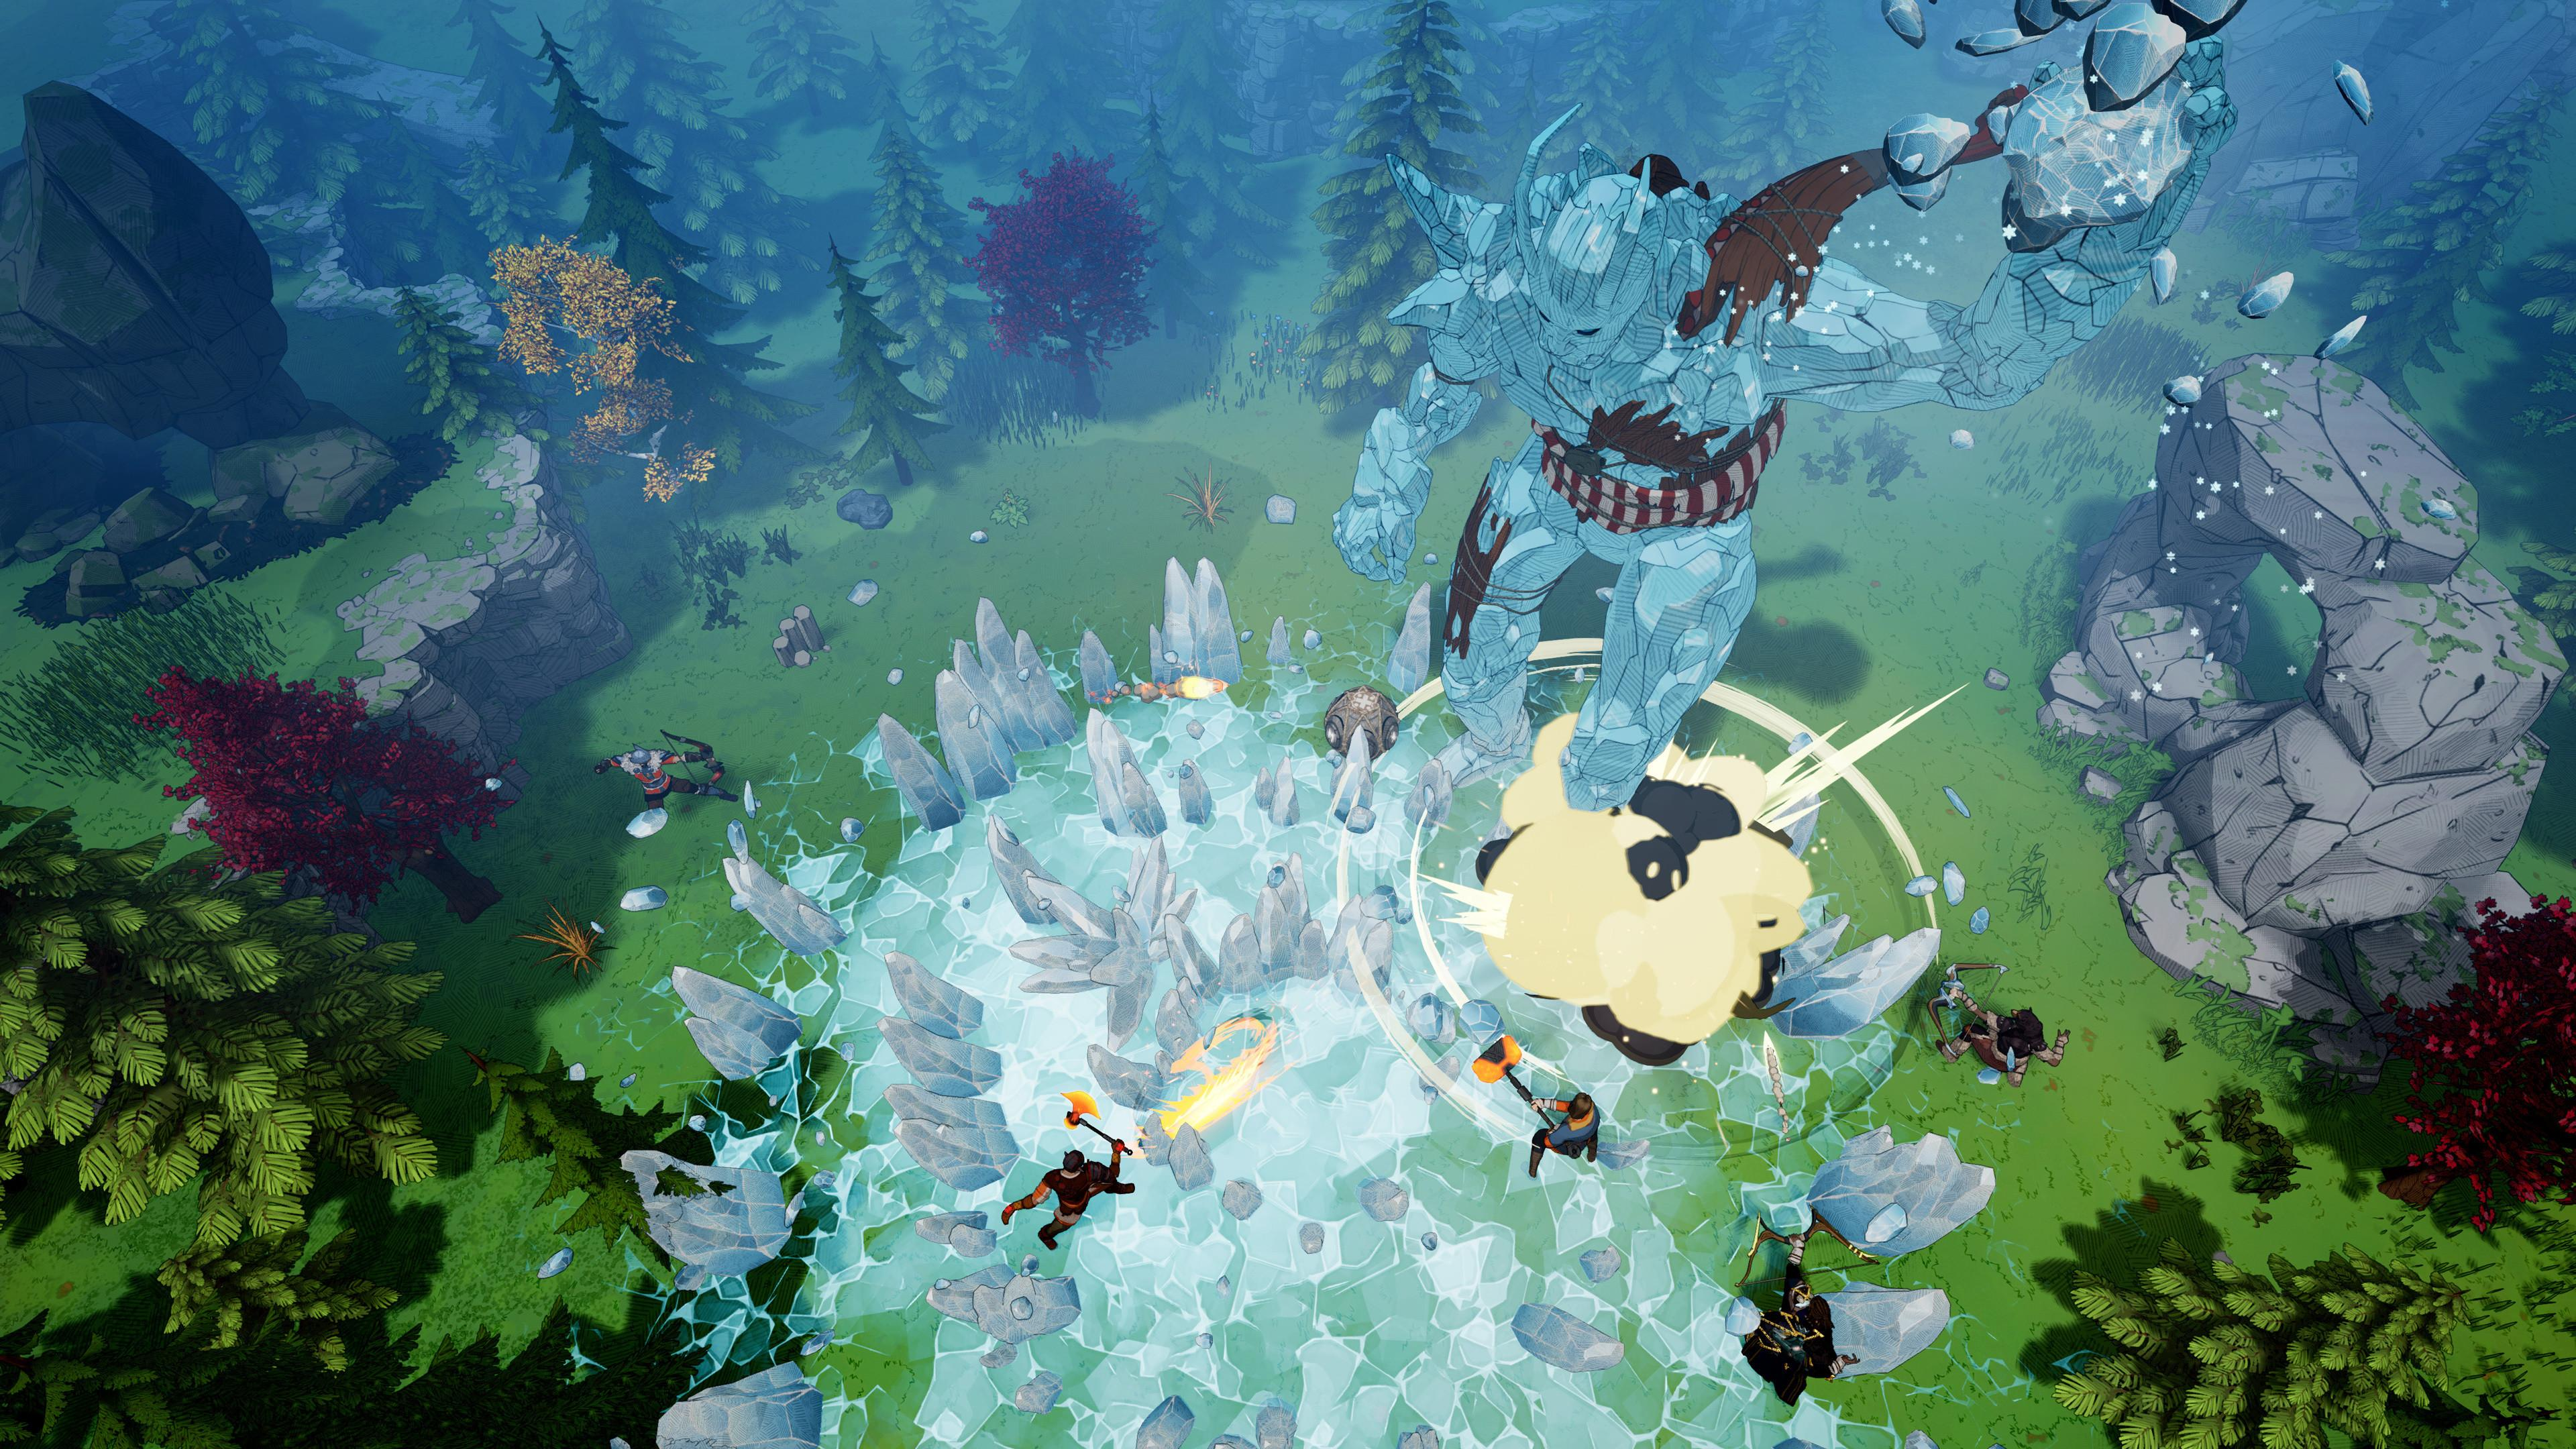 Tribes of Midgard features battles against enemies of gigantic proportions